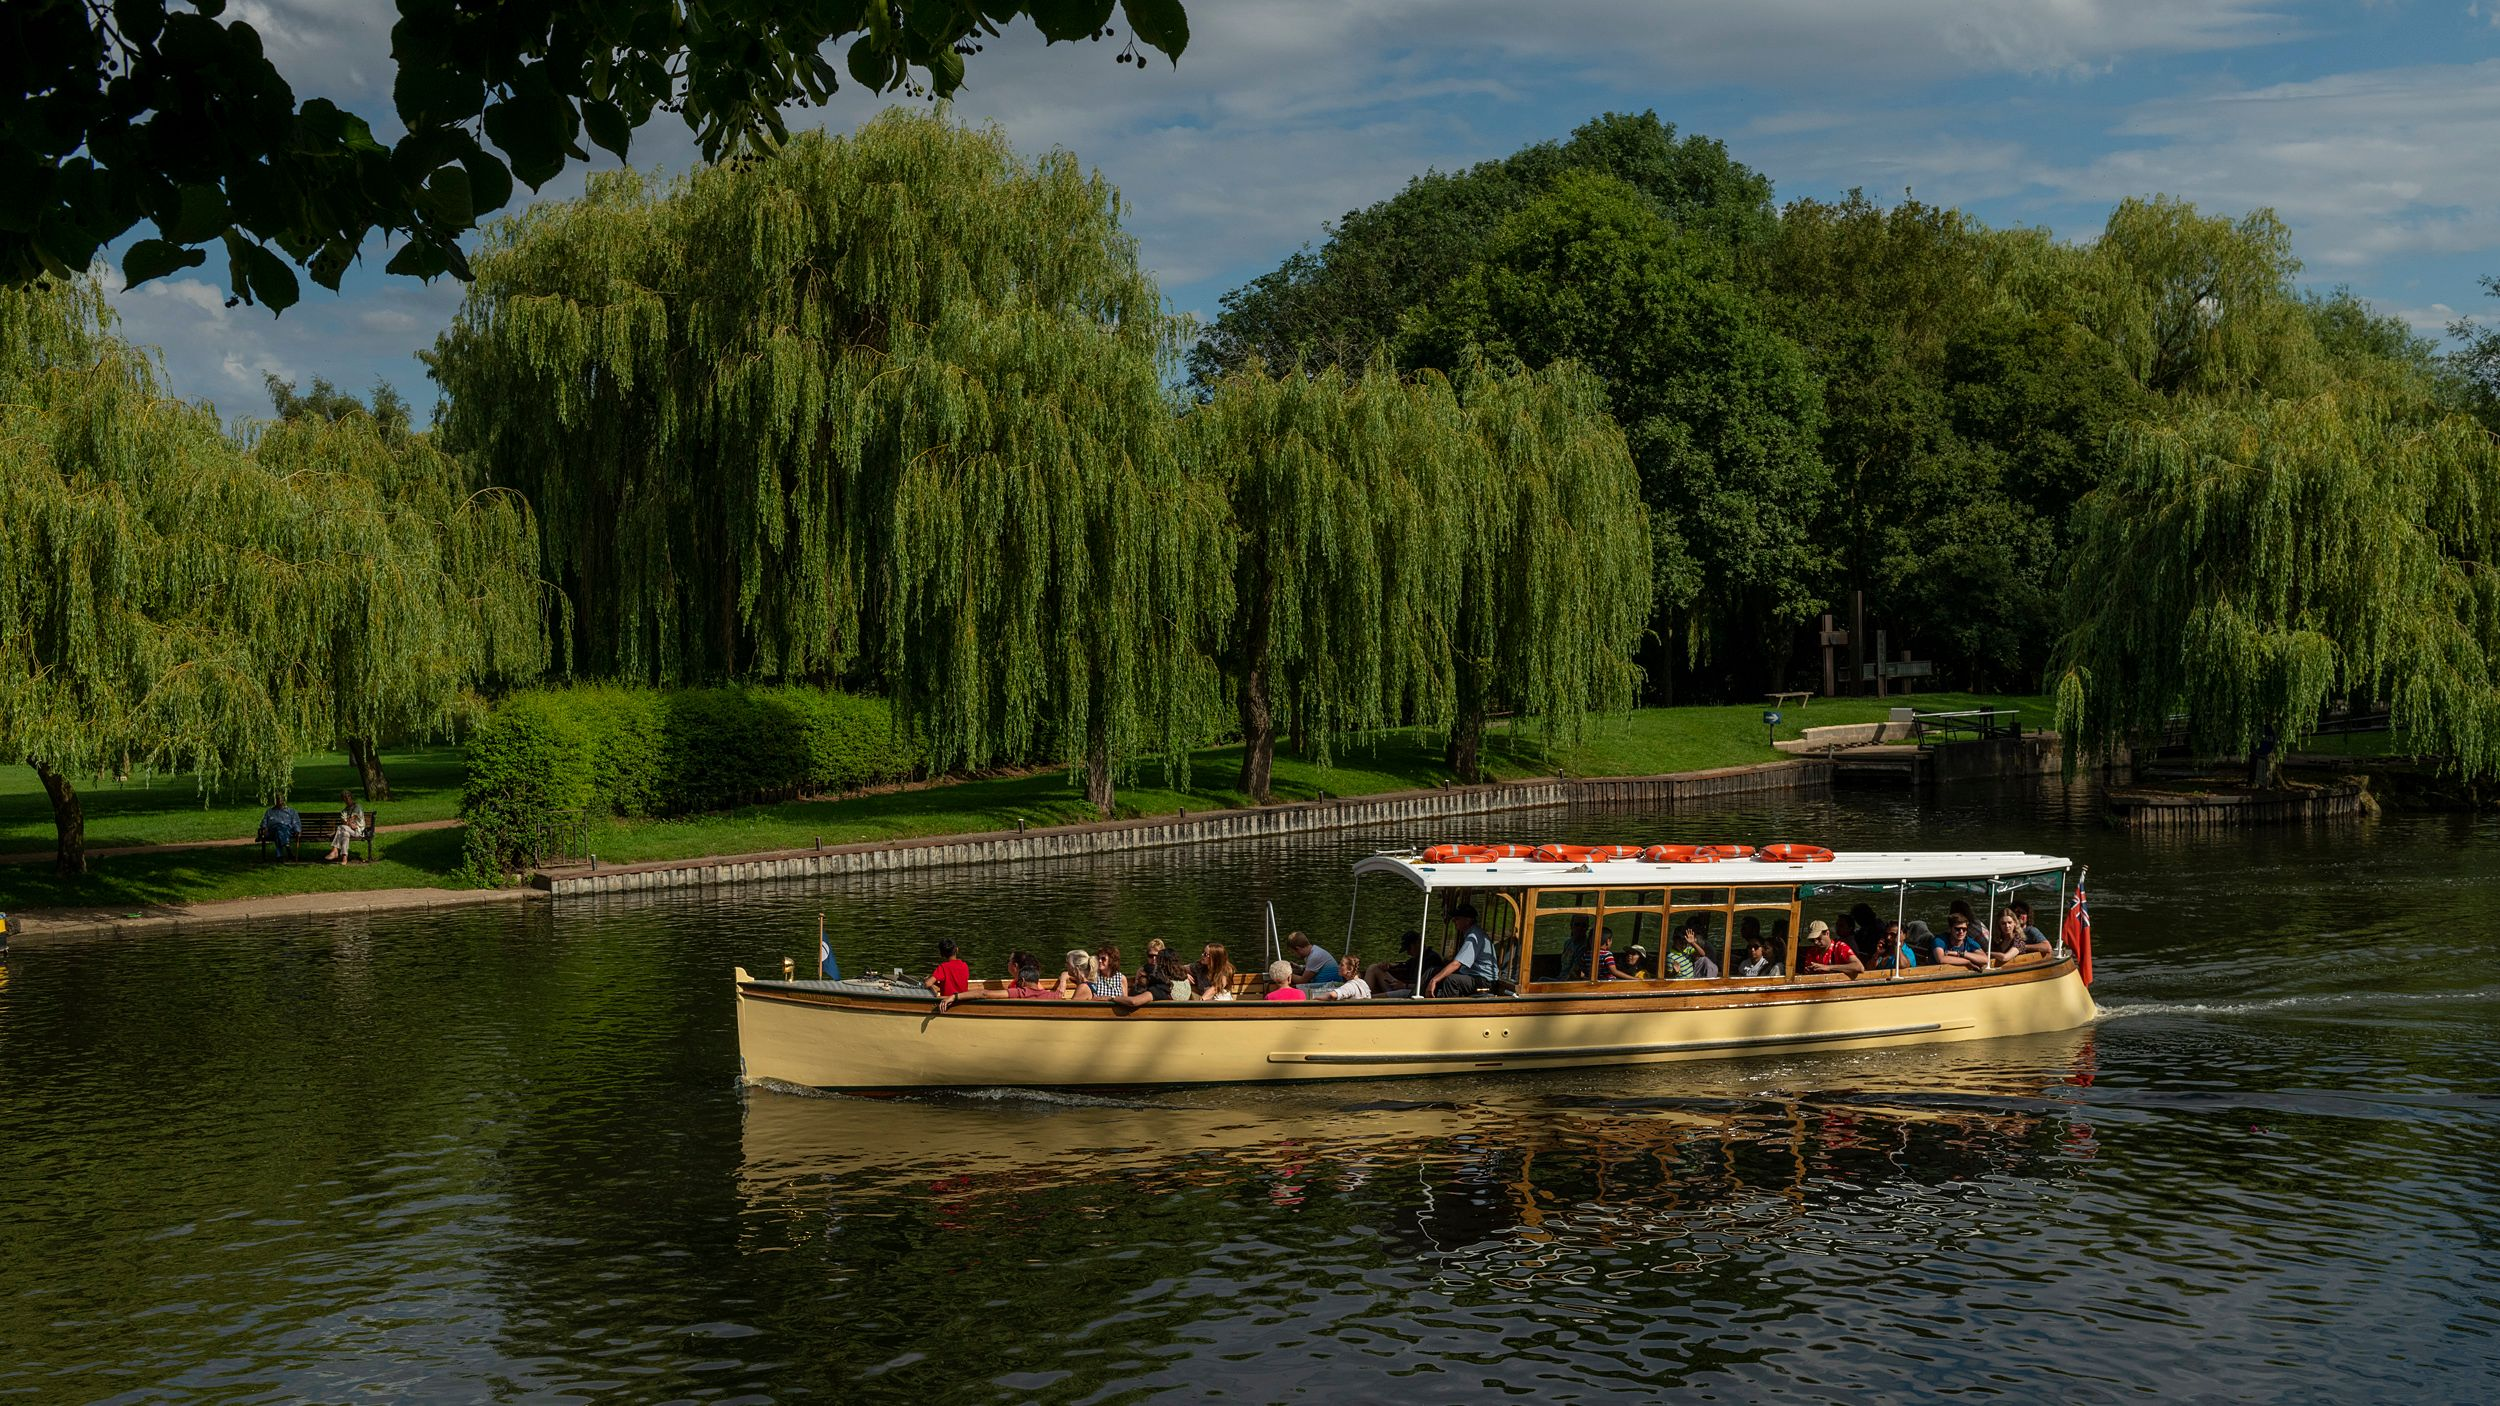 Mayflower - Avon Boats - Stratford upon Avon